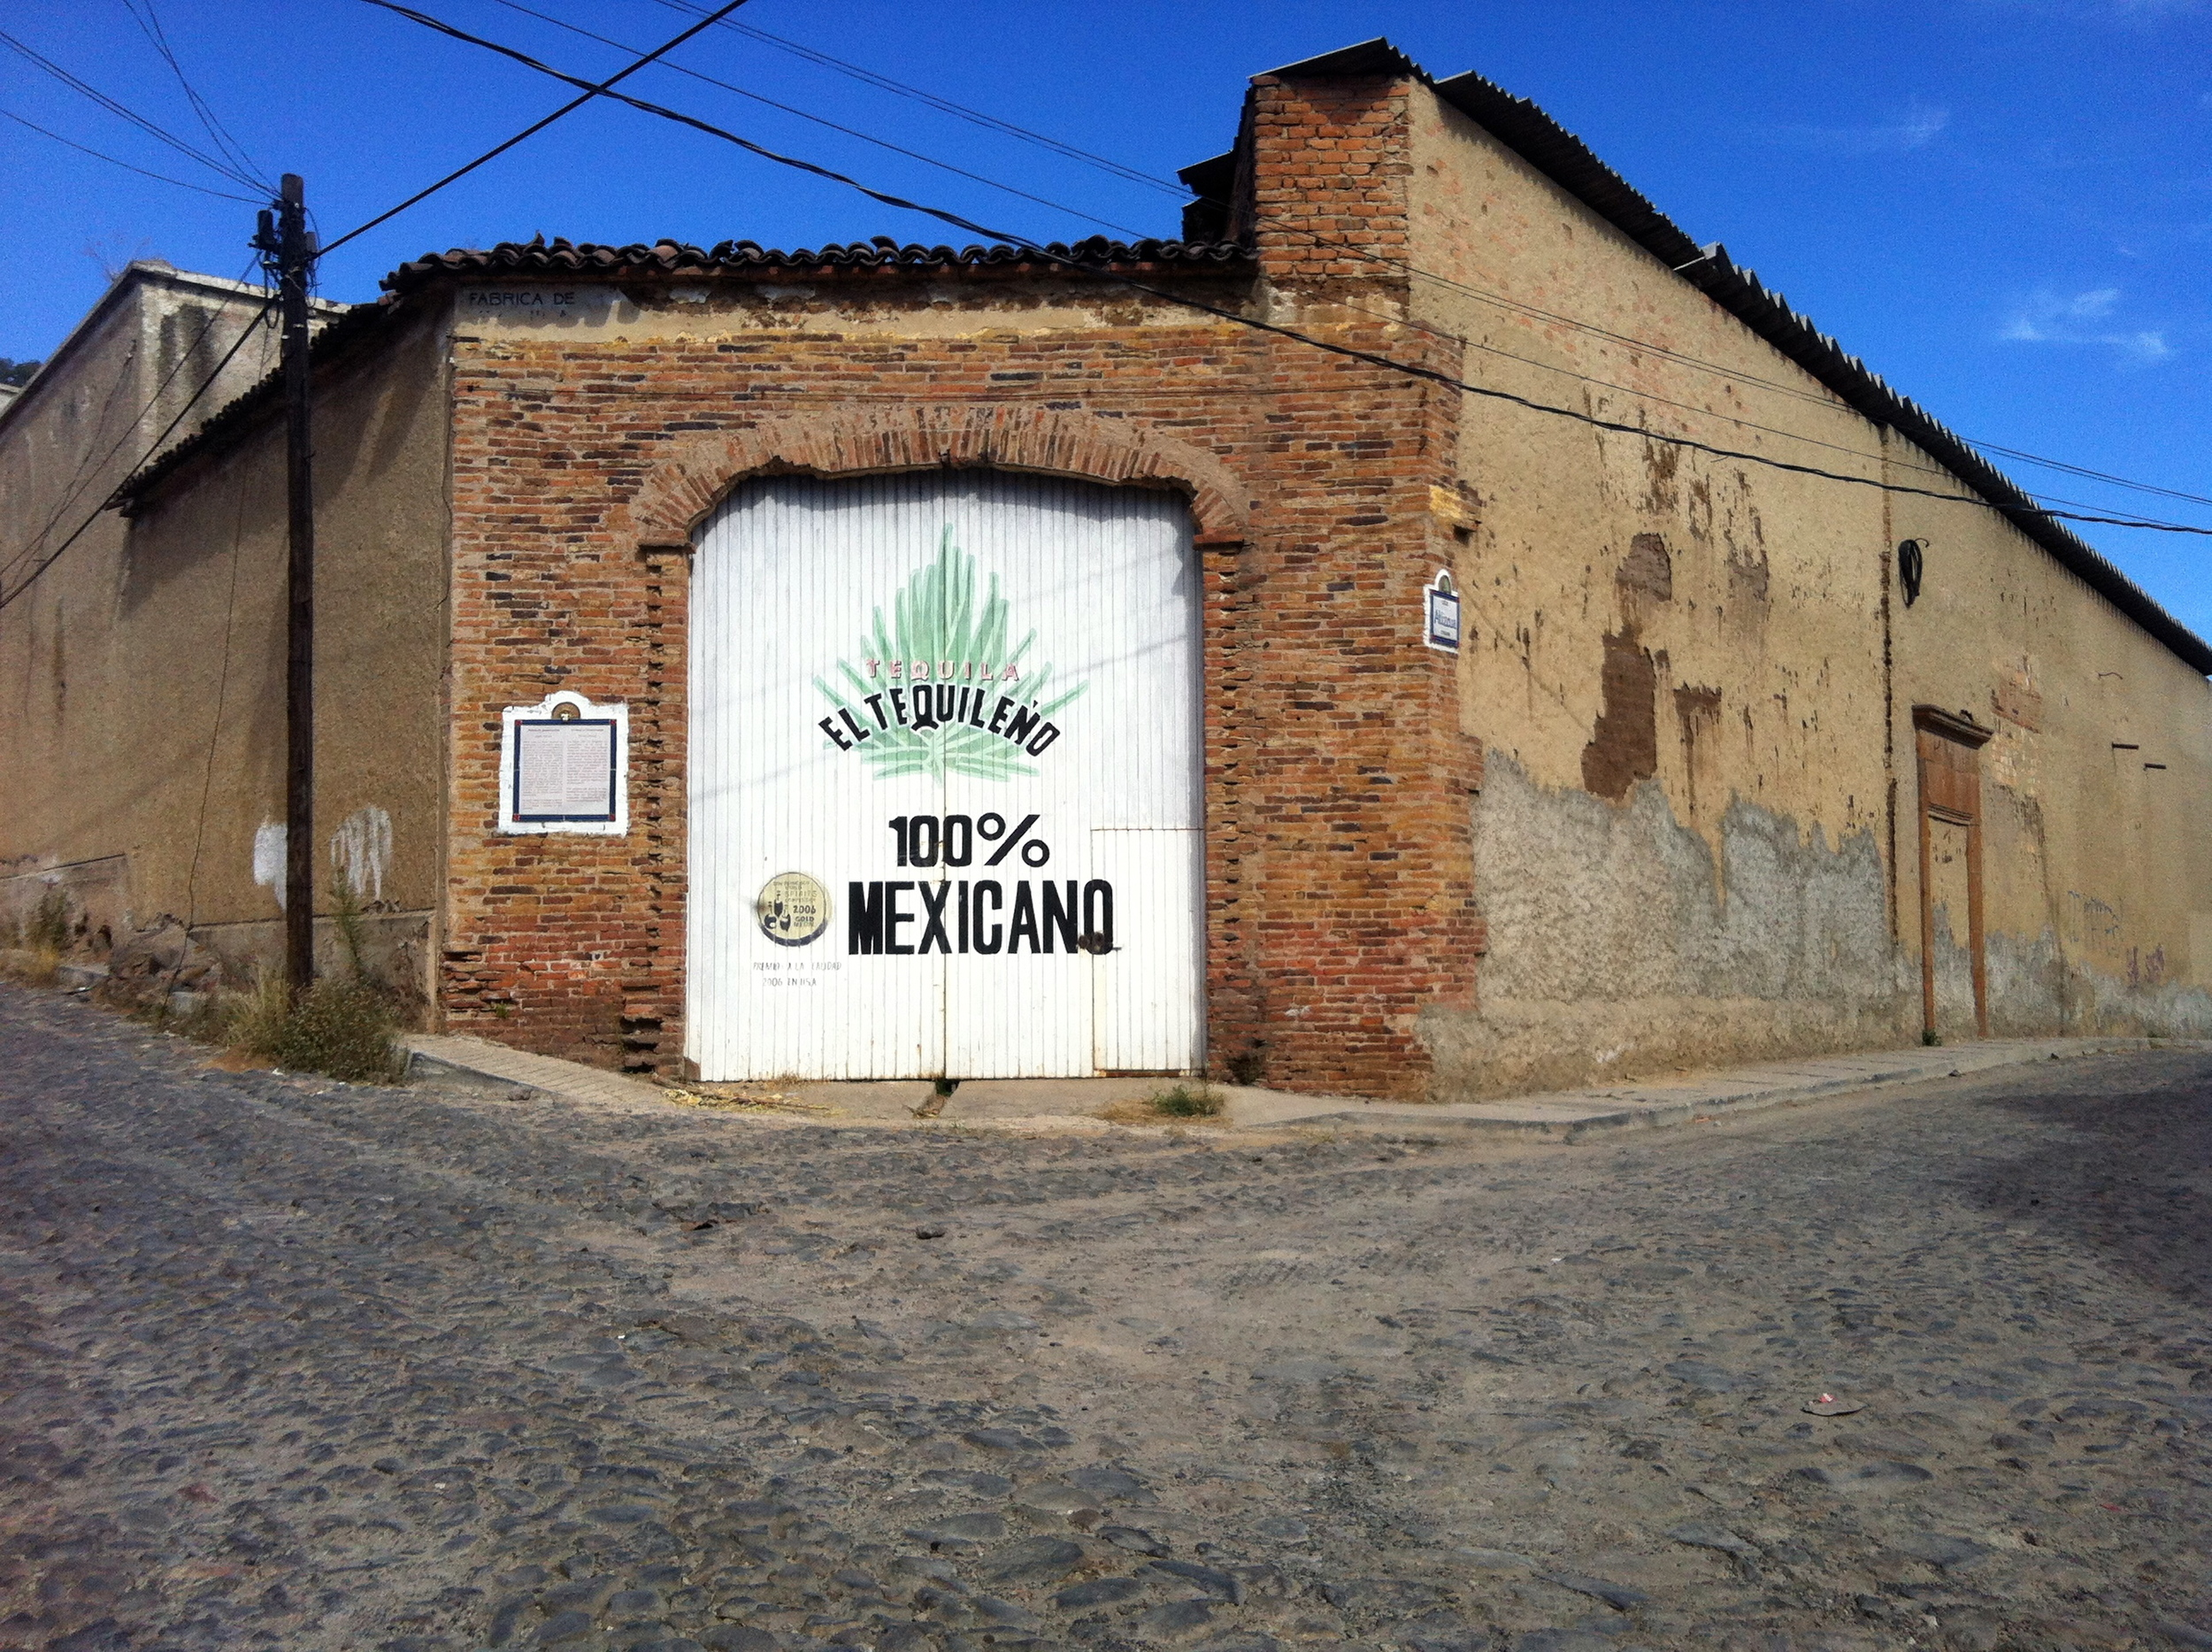 The Historical area of Tequila…some of the plants are now being restored.